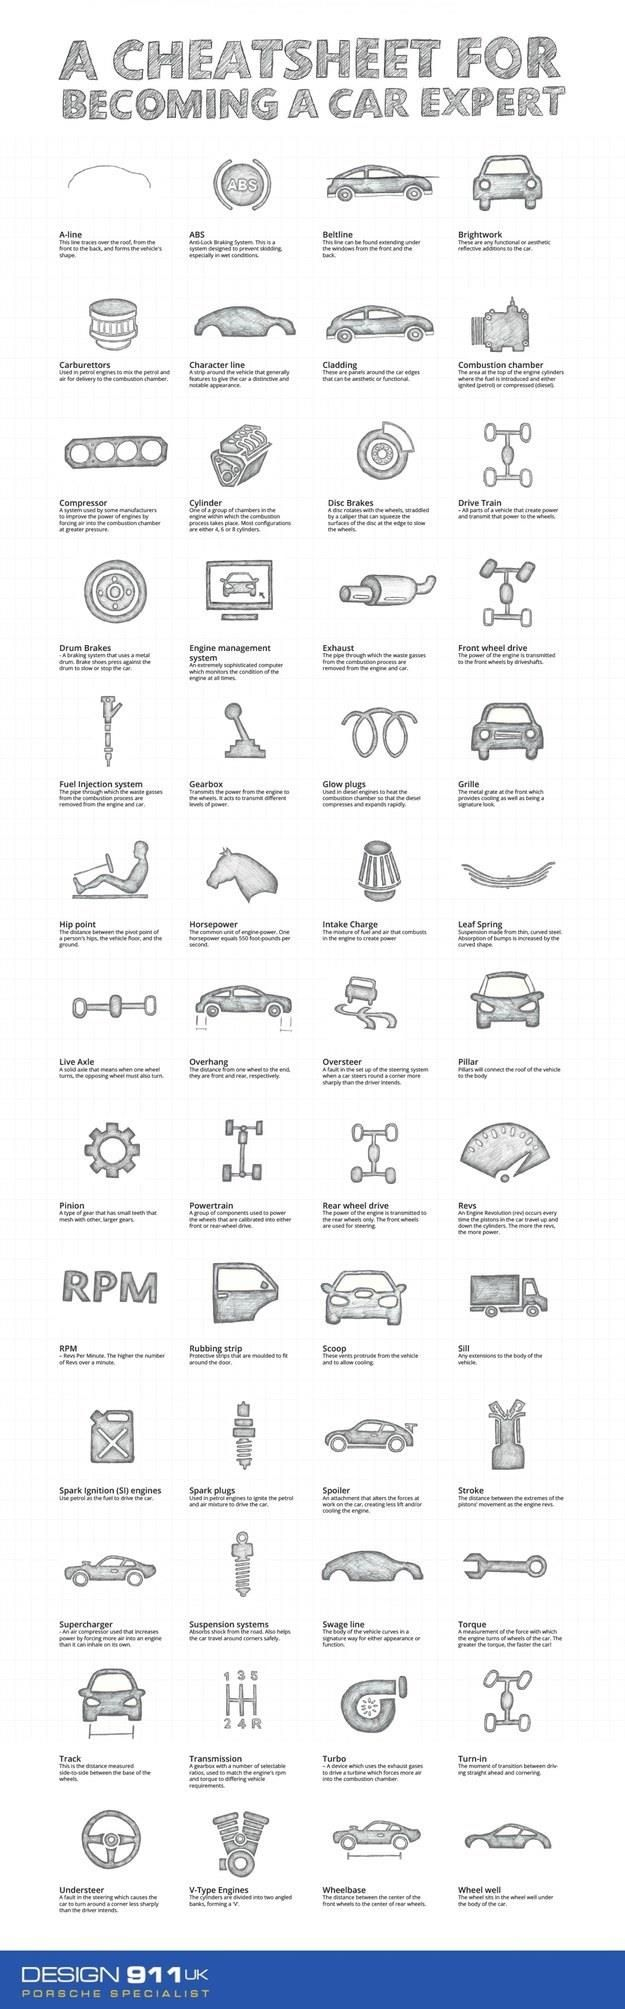 Auto repair shops near me and reviews - 21 Genius Car Cheat Sheets Every Driver Needs To See